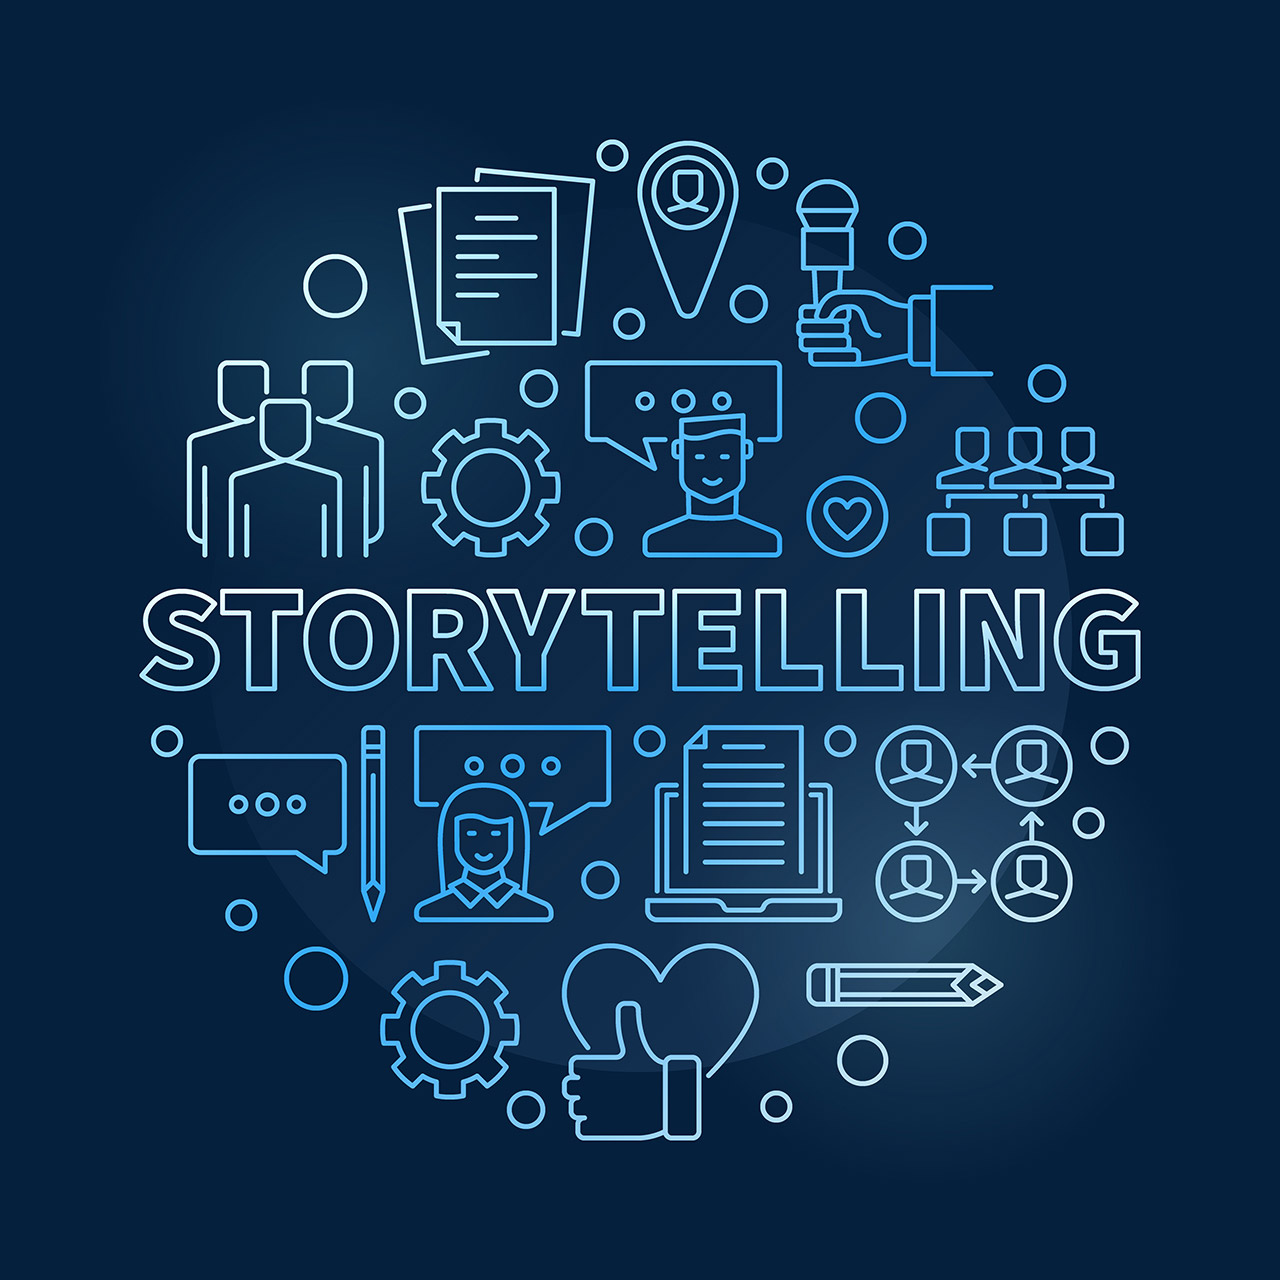 SEO / Content Marketing - Storytelling